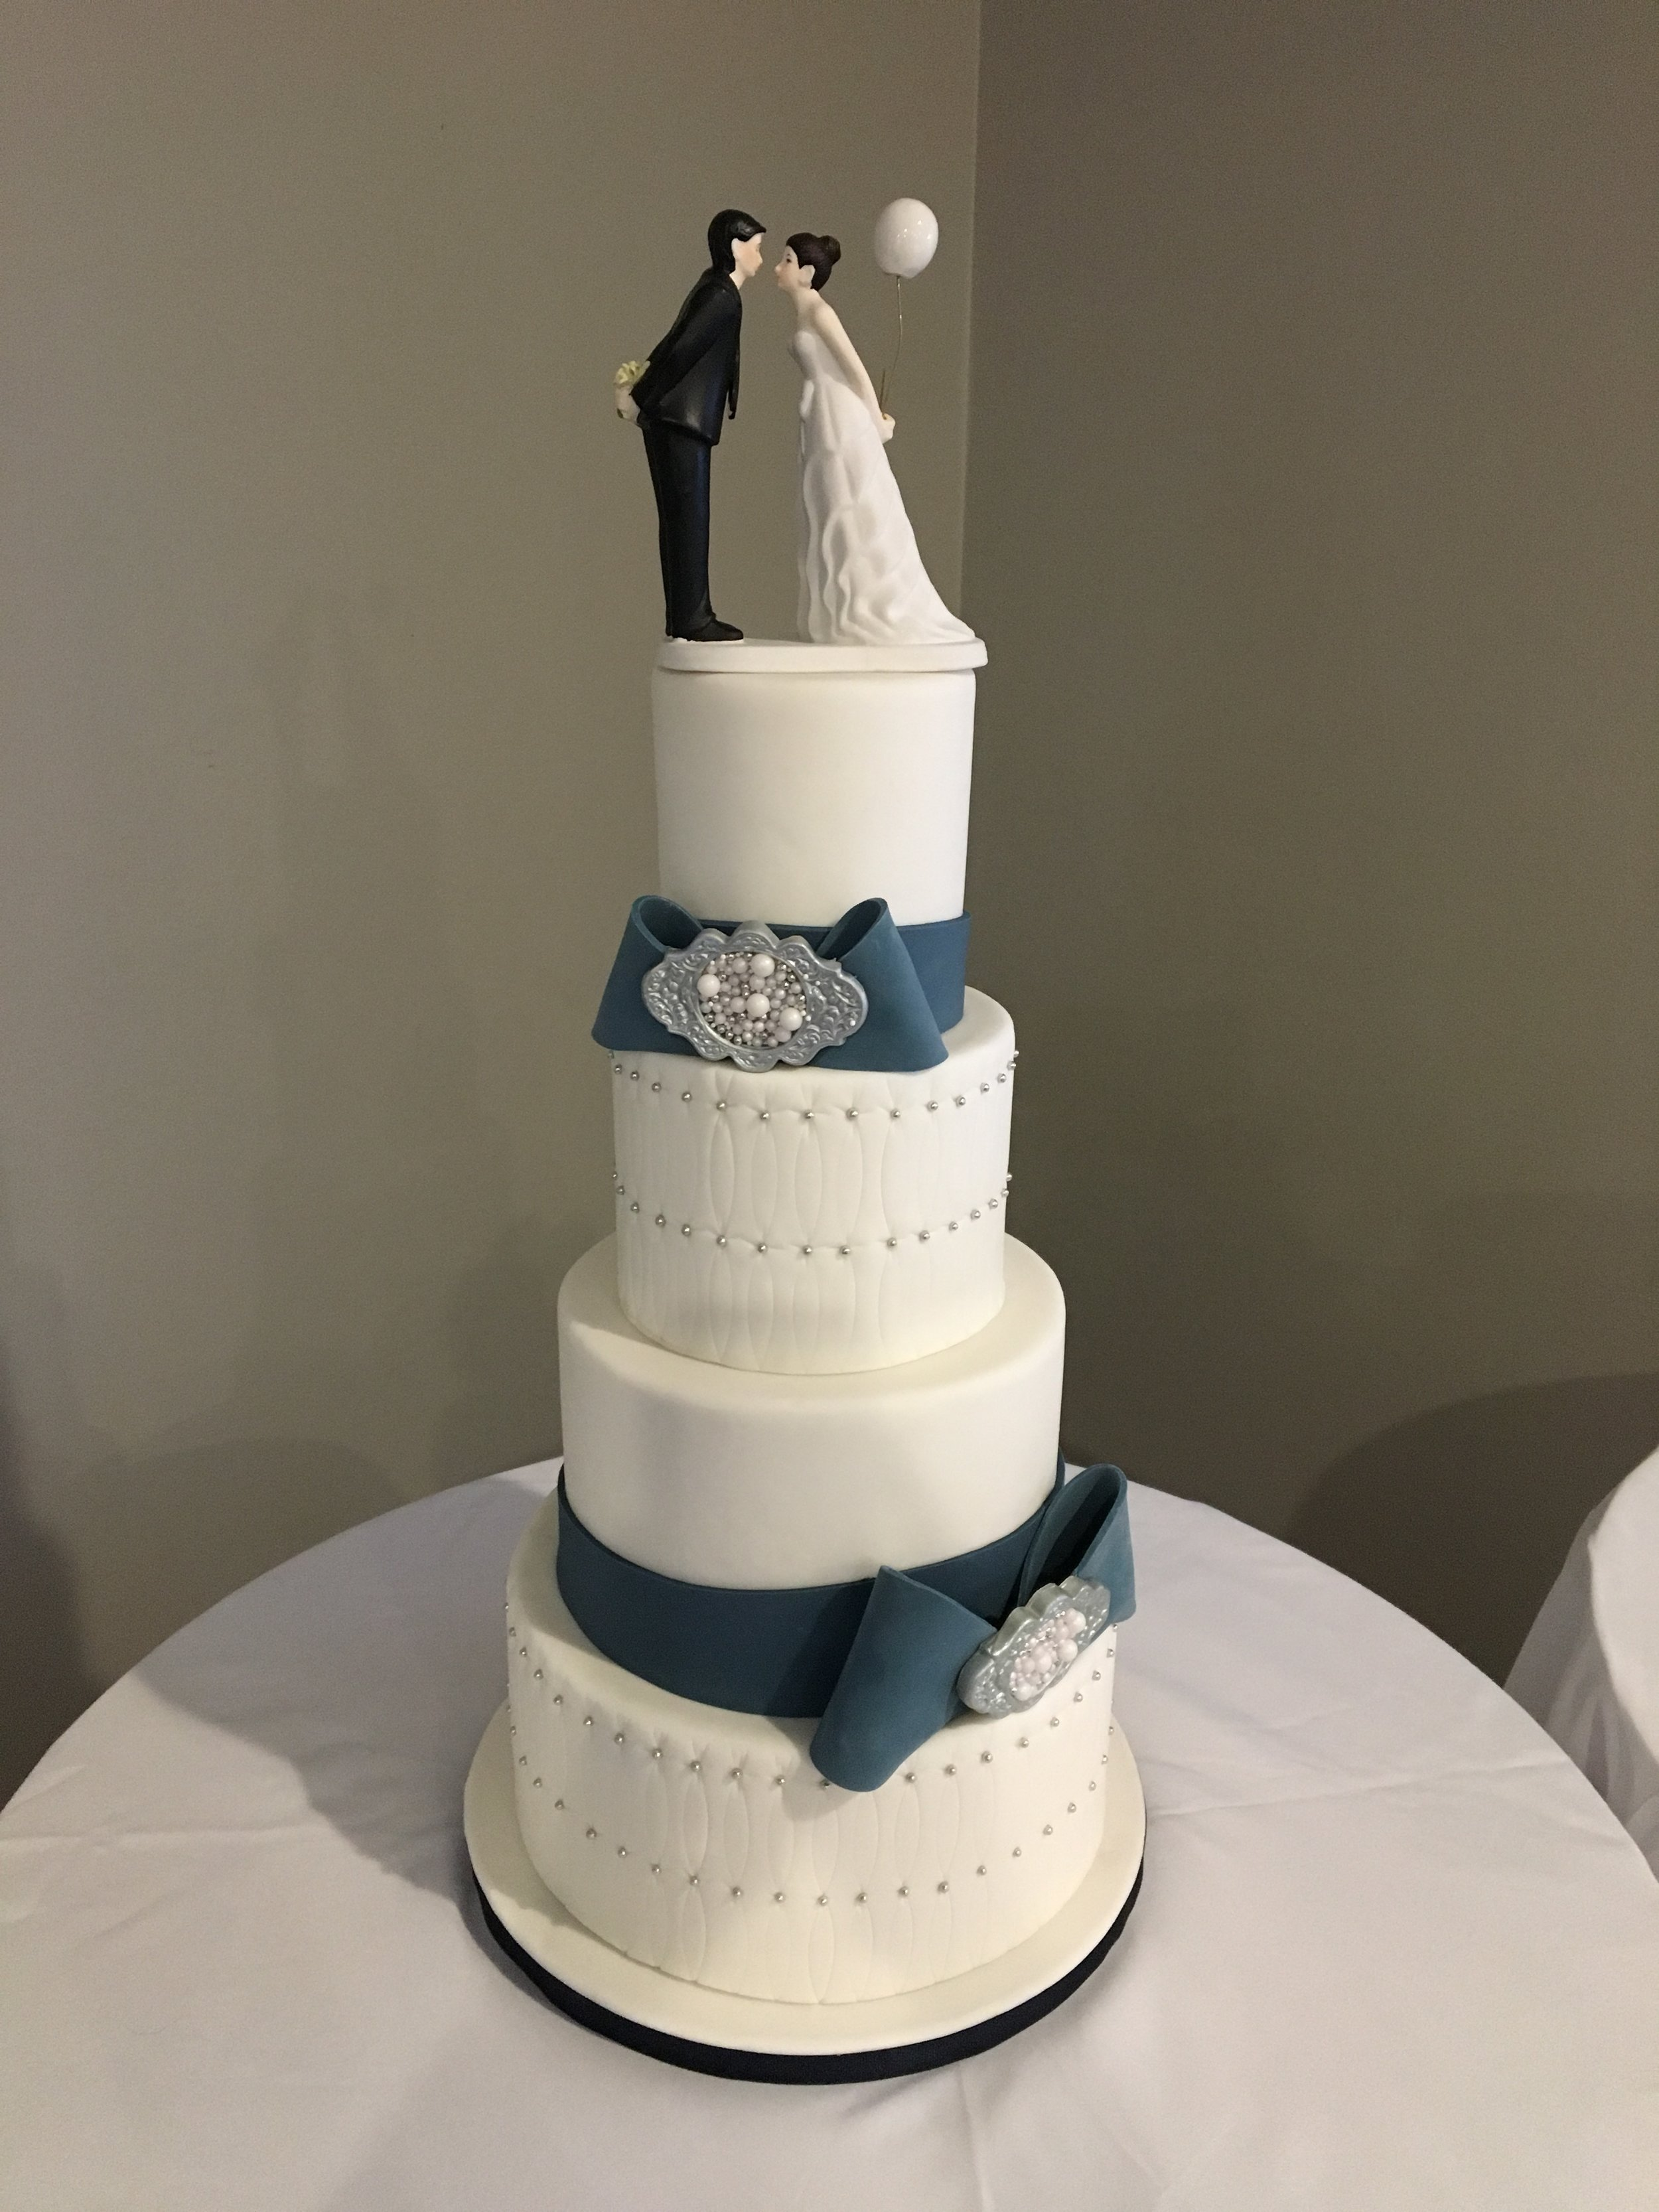 Tufted classic white with blue wedding cake